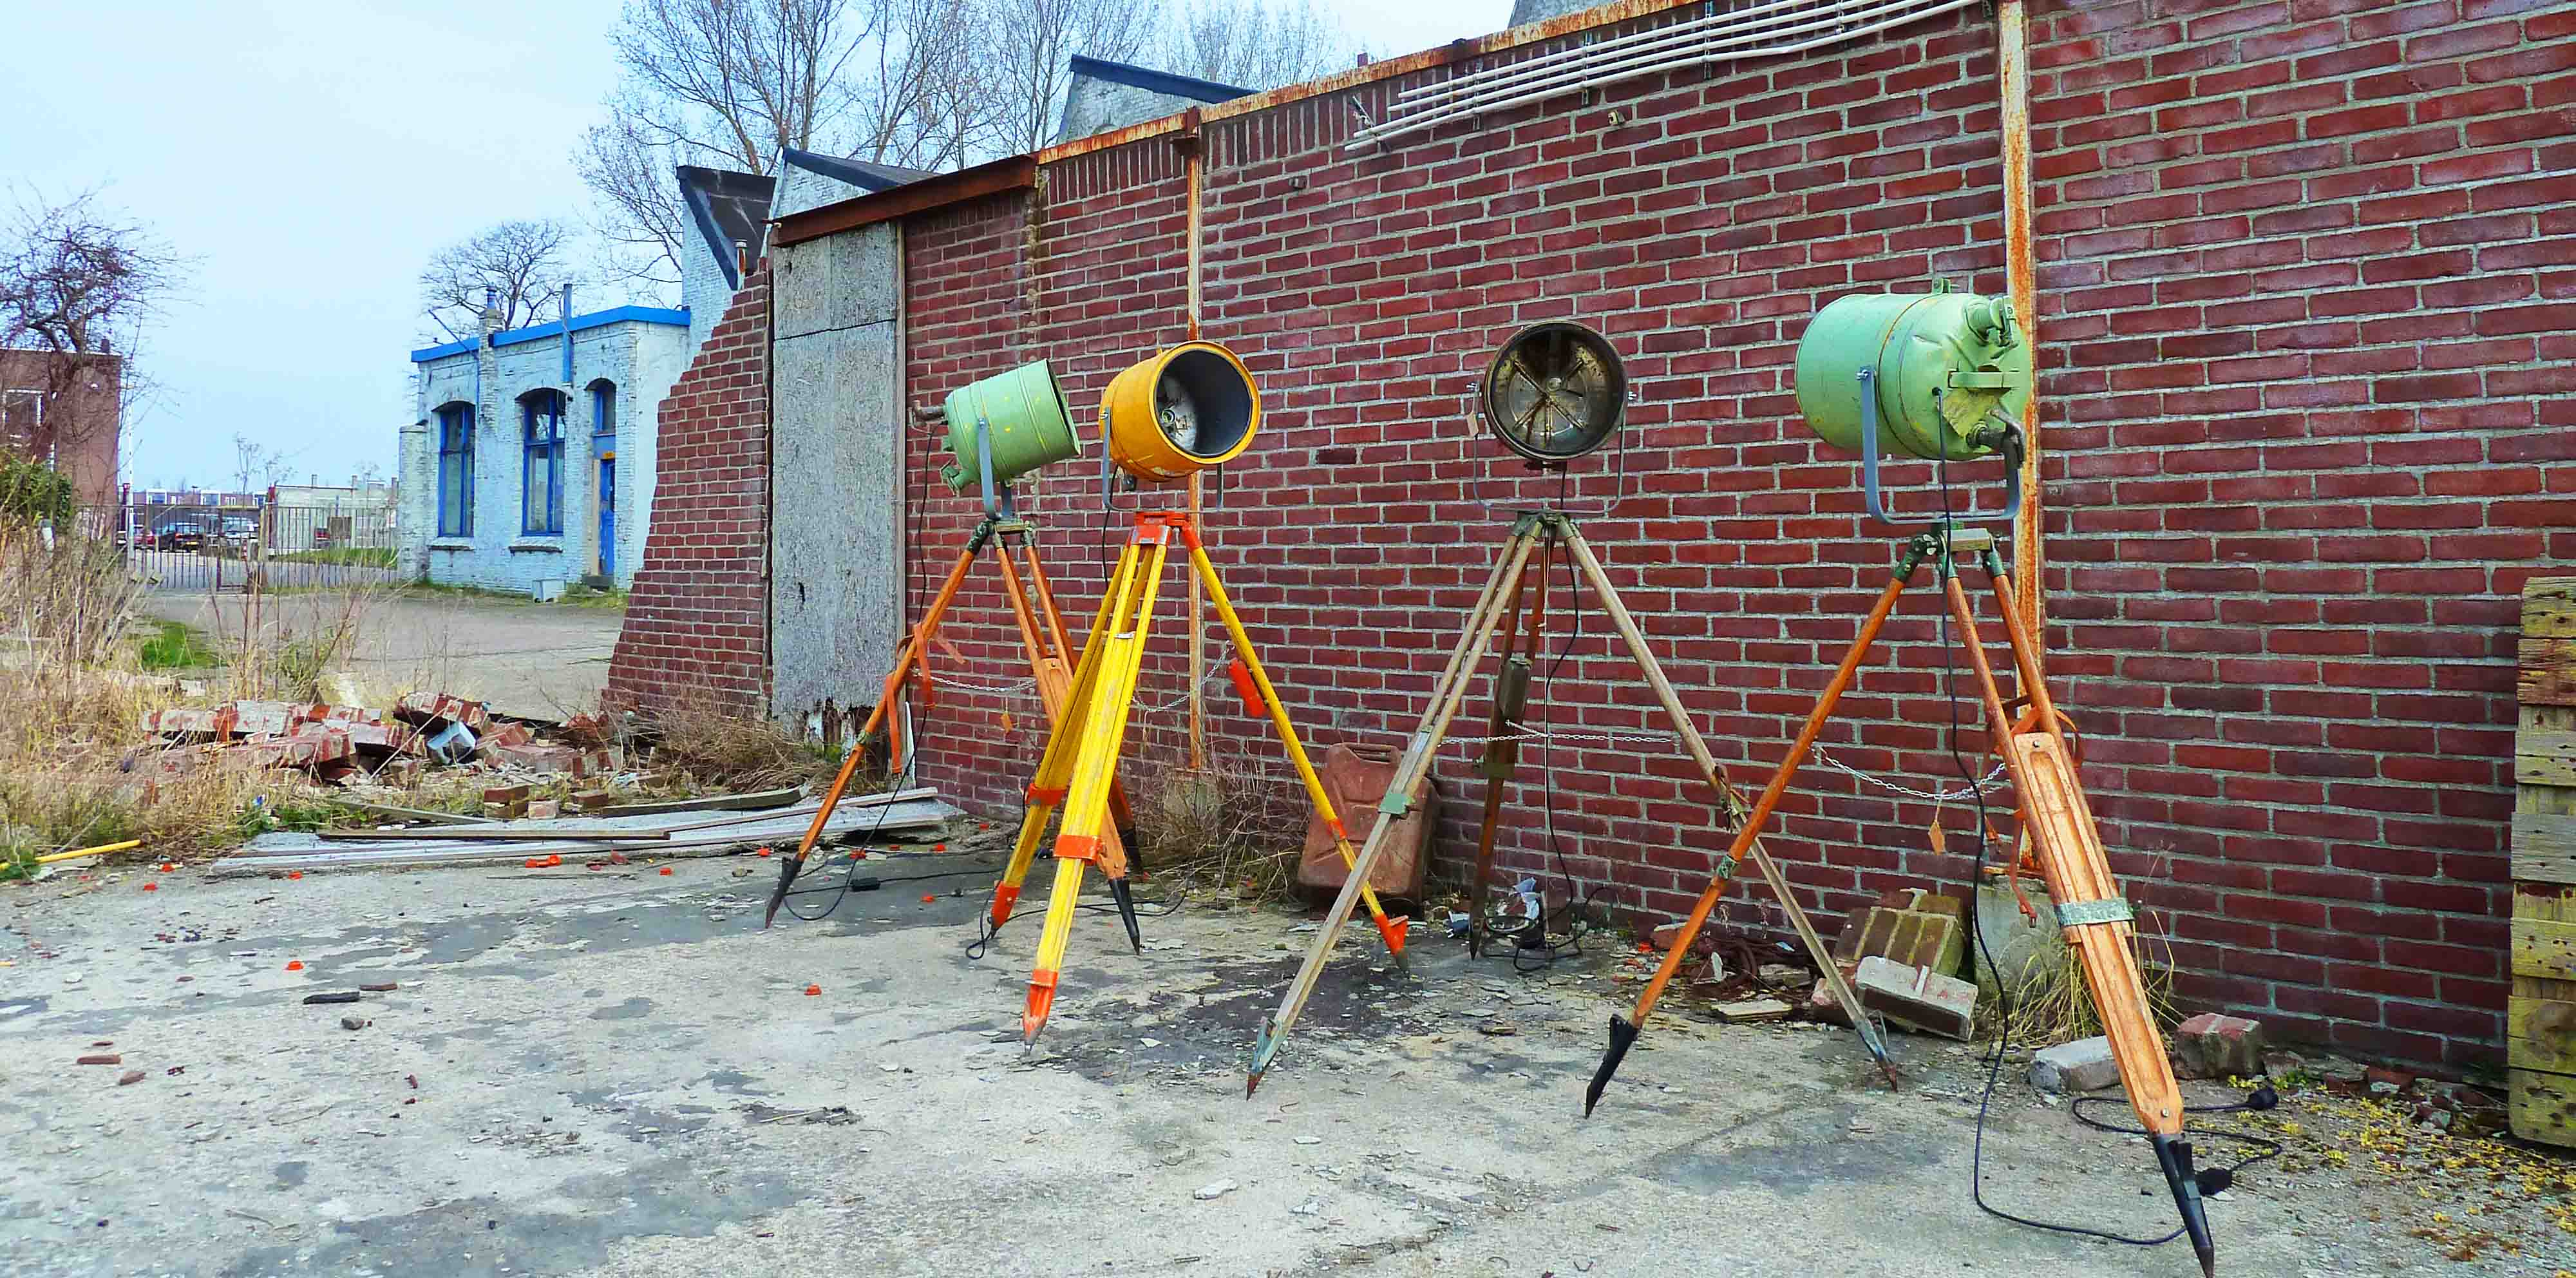 https://www.indusigns.nl/wp-content/uploads/2015/03/Industri%C3%ABle-Statieflampen-%E2%80%98Tripod-Army-Vintage-Hipster%E2%80%99-Indusigns.jpg